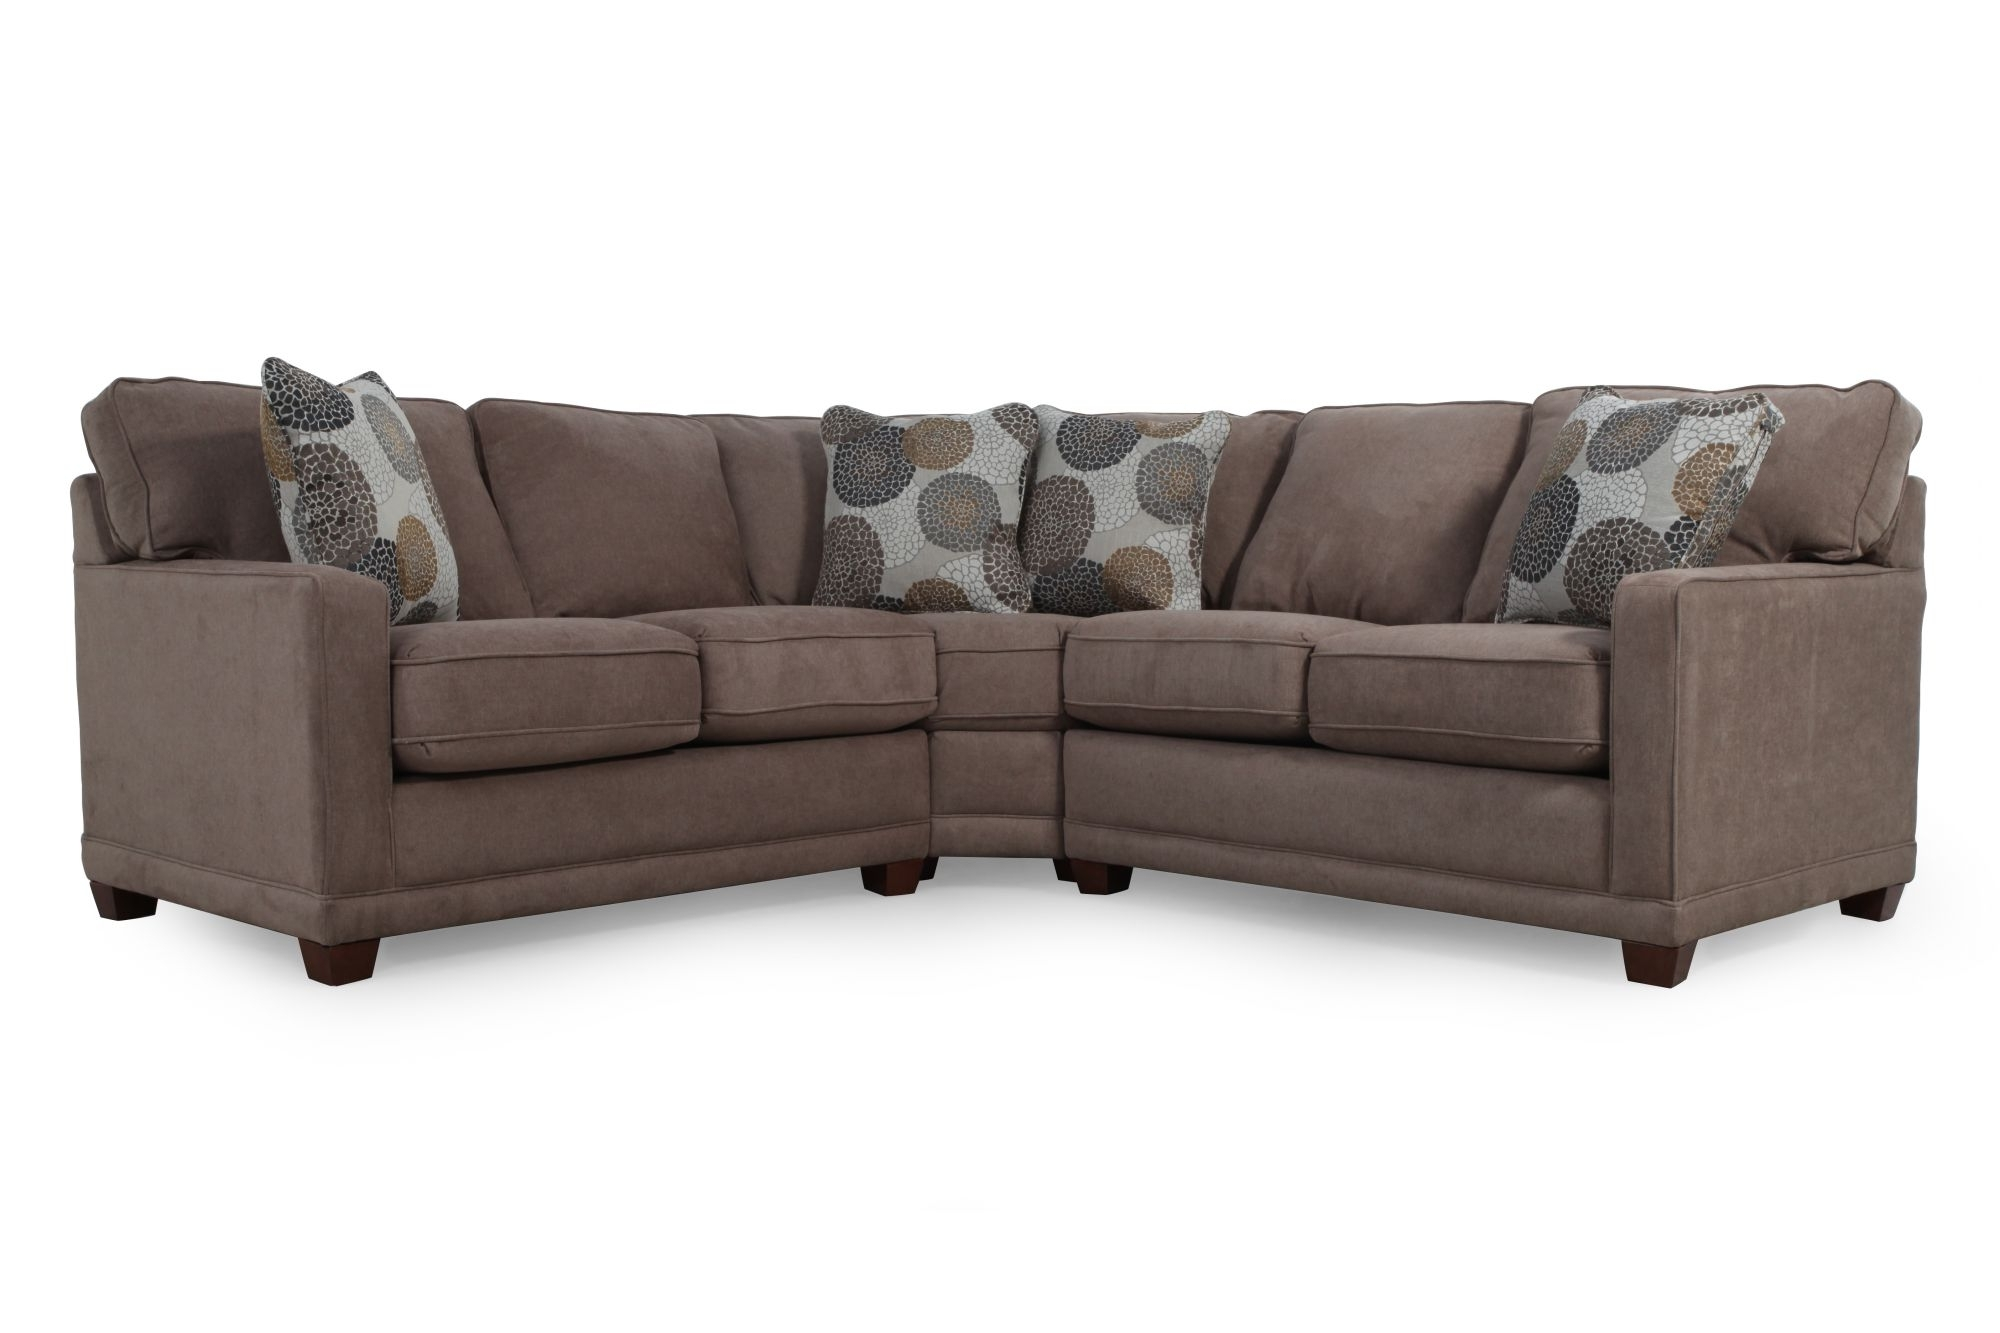 Lazy Boy Sectional Sofas Regarding Most Popular Lazy Boy Sectional Sofa – Visionexchange (View 7 of 20)